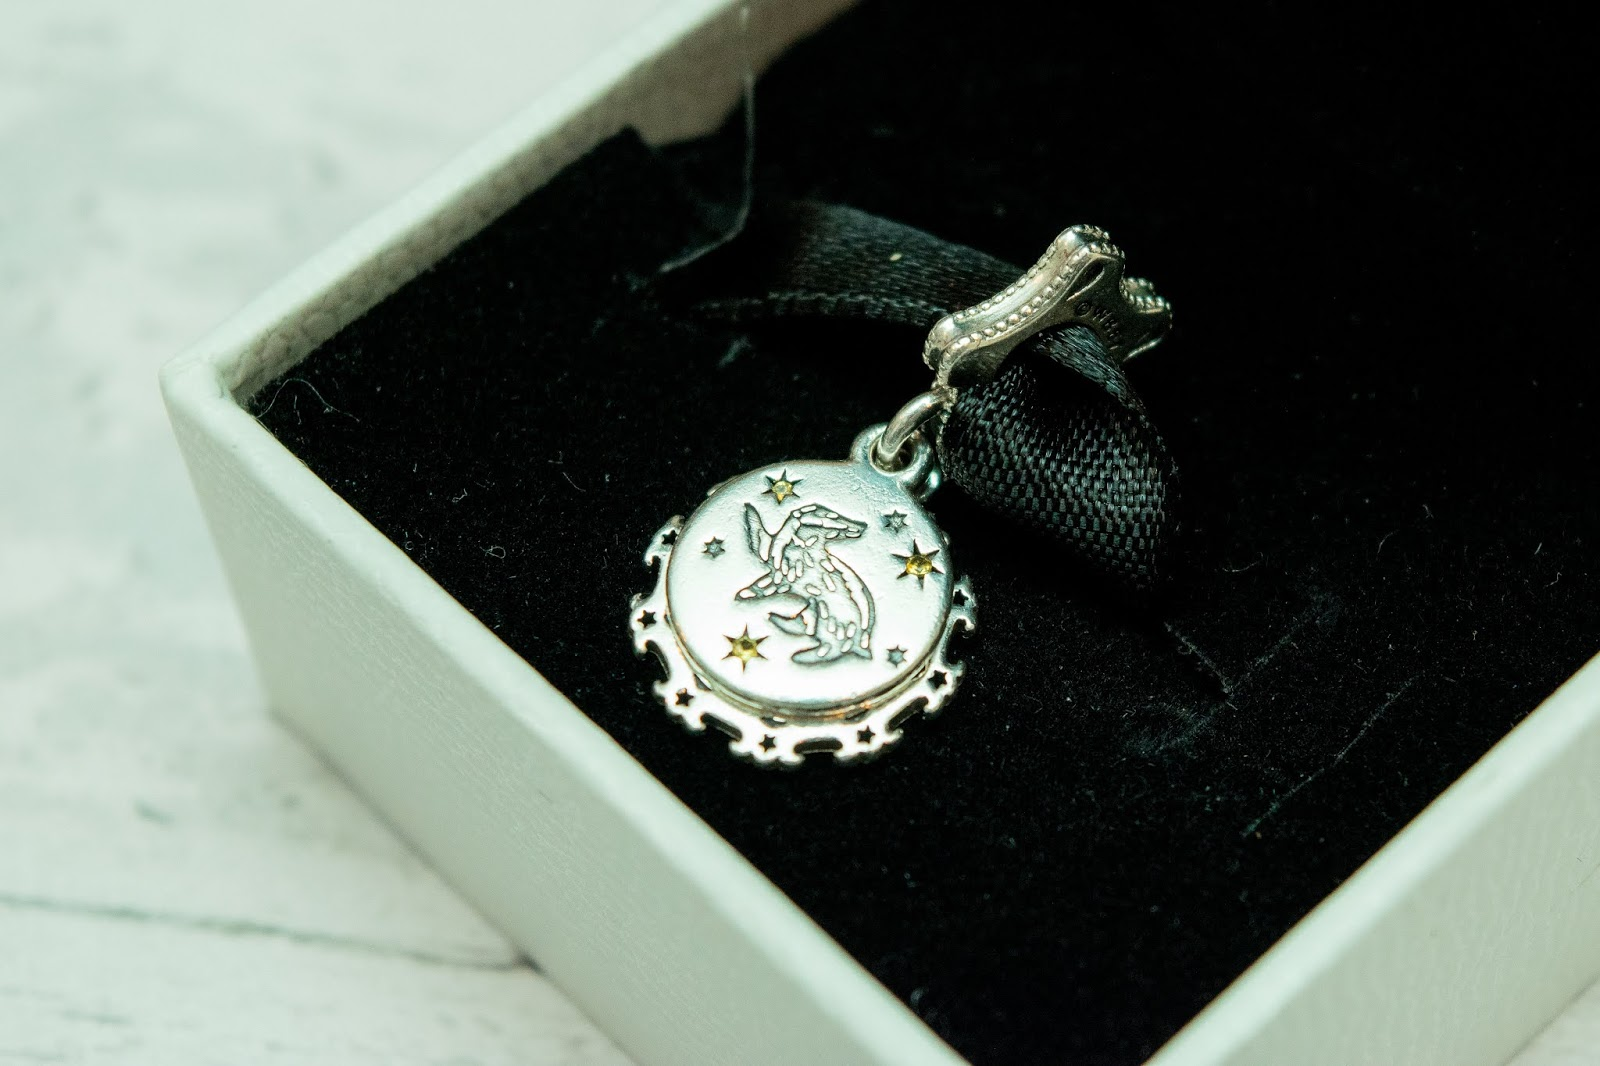 A Pandora charm with the Hufflepuff badge engraved into it.